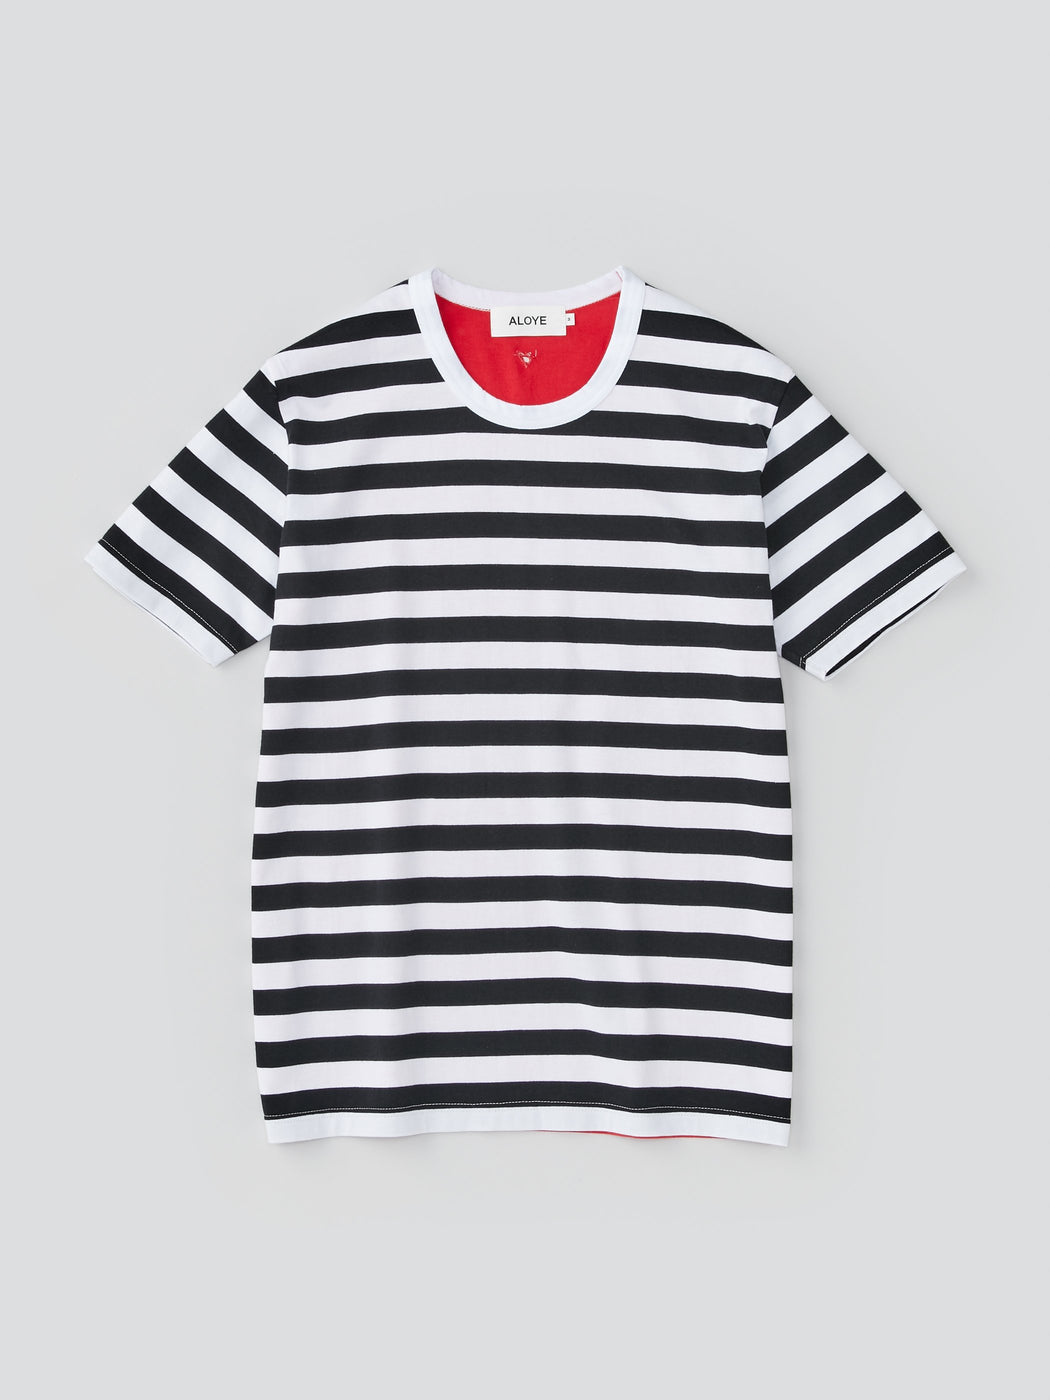 ALOYE Dots & Stripes Men's Short Sleeve T-shirt Black Stripe-Red Back